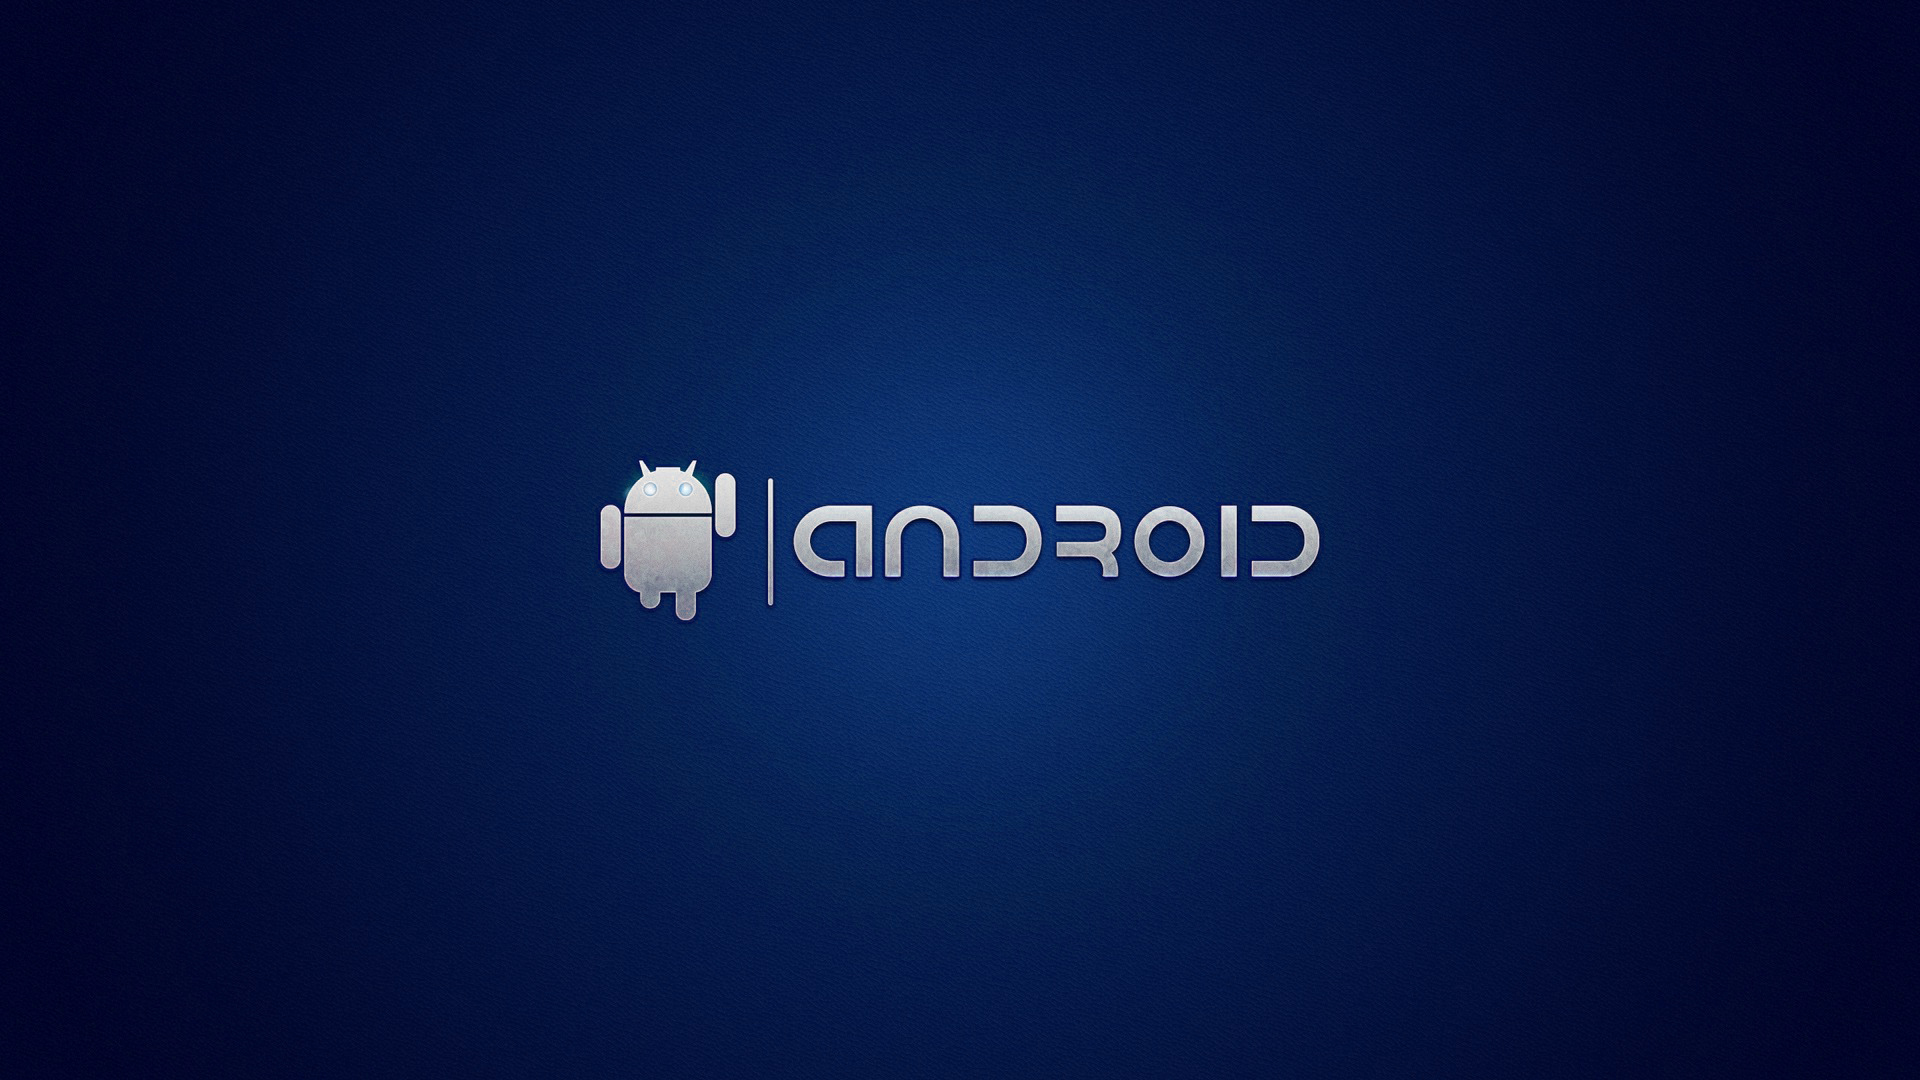 Android Wallpaper 1920x1080